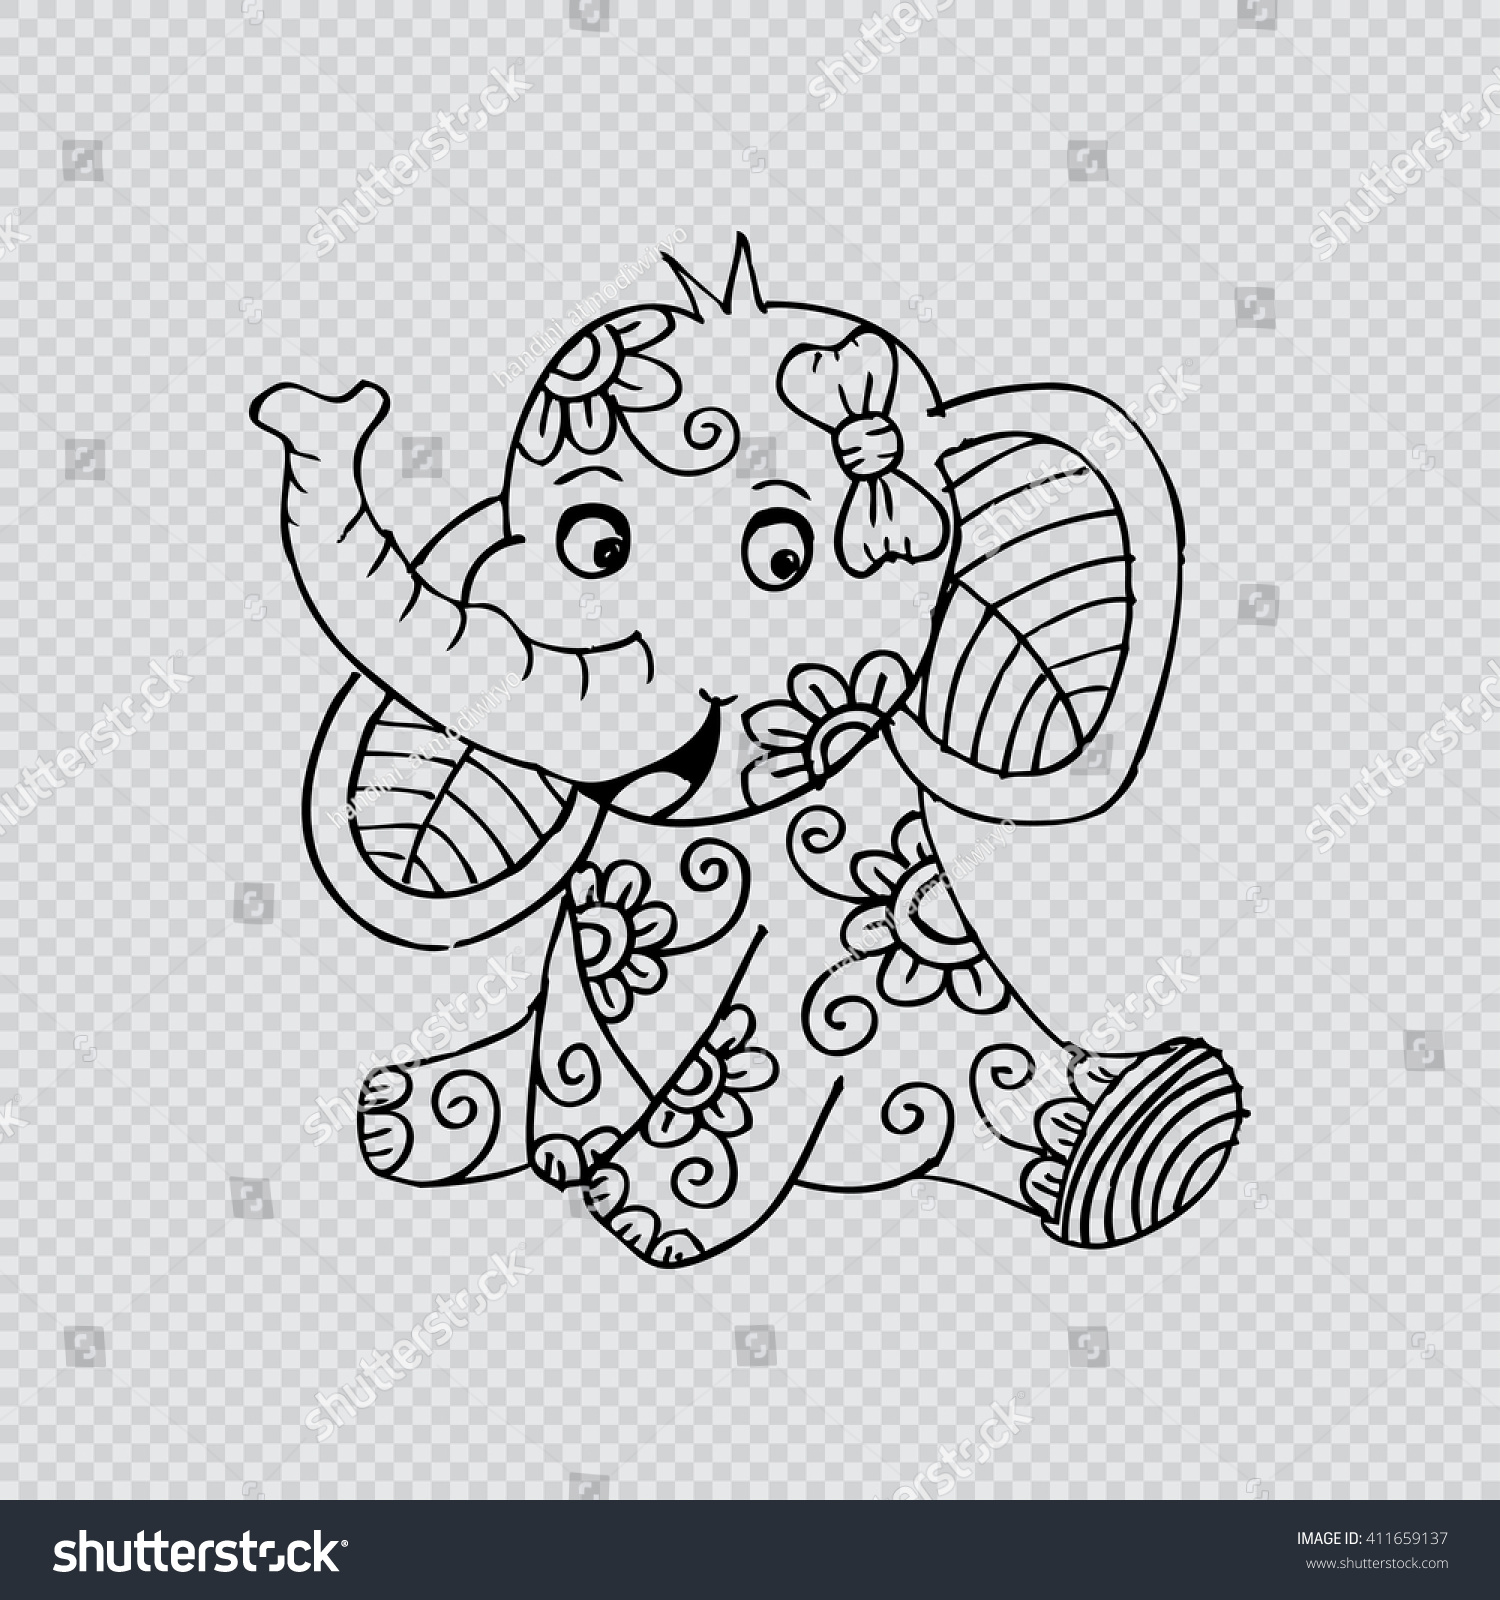 Baby Elephant Doodle Style Stock Vector (Royalty Free) 411659137 ...